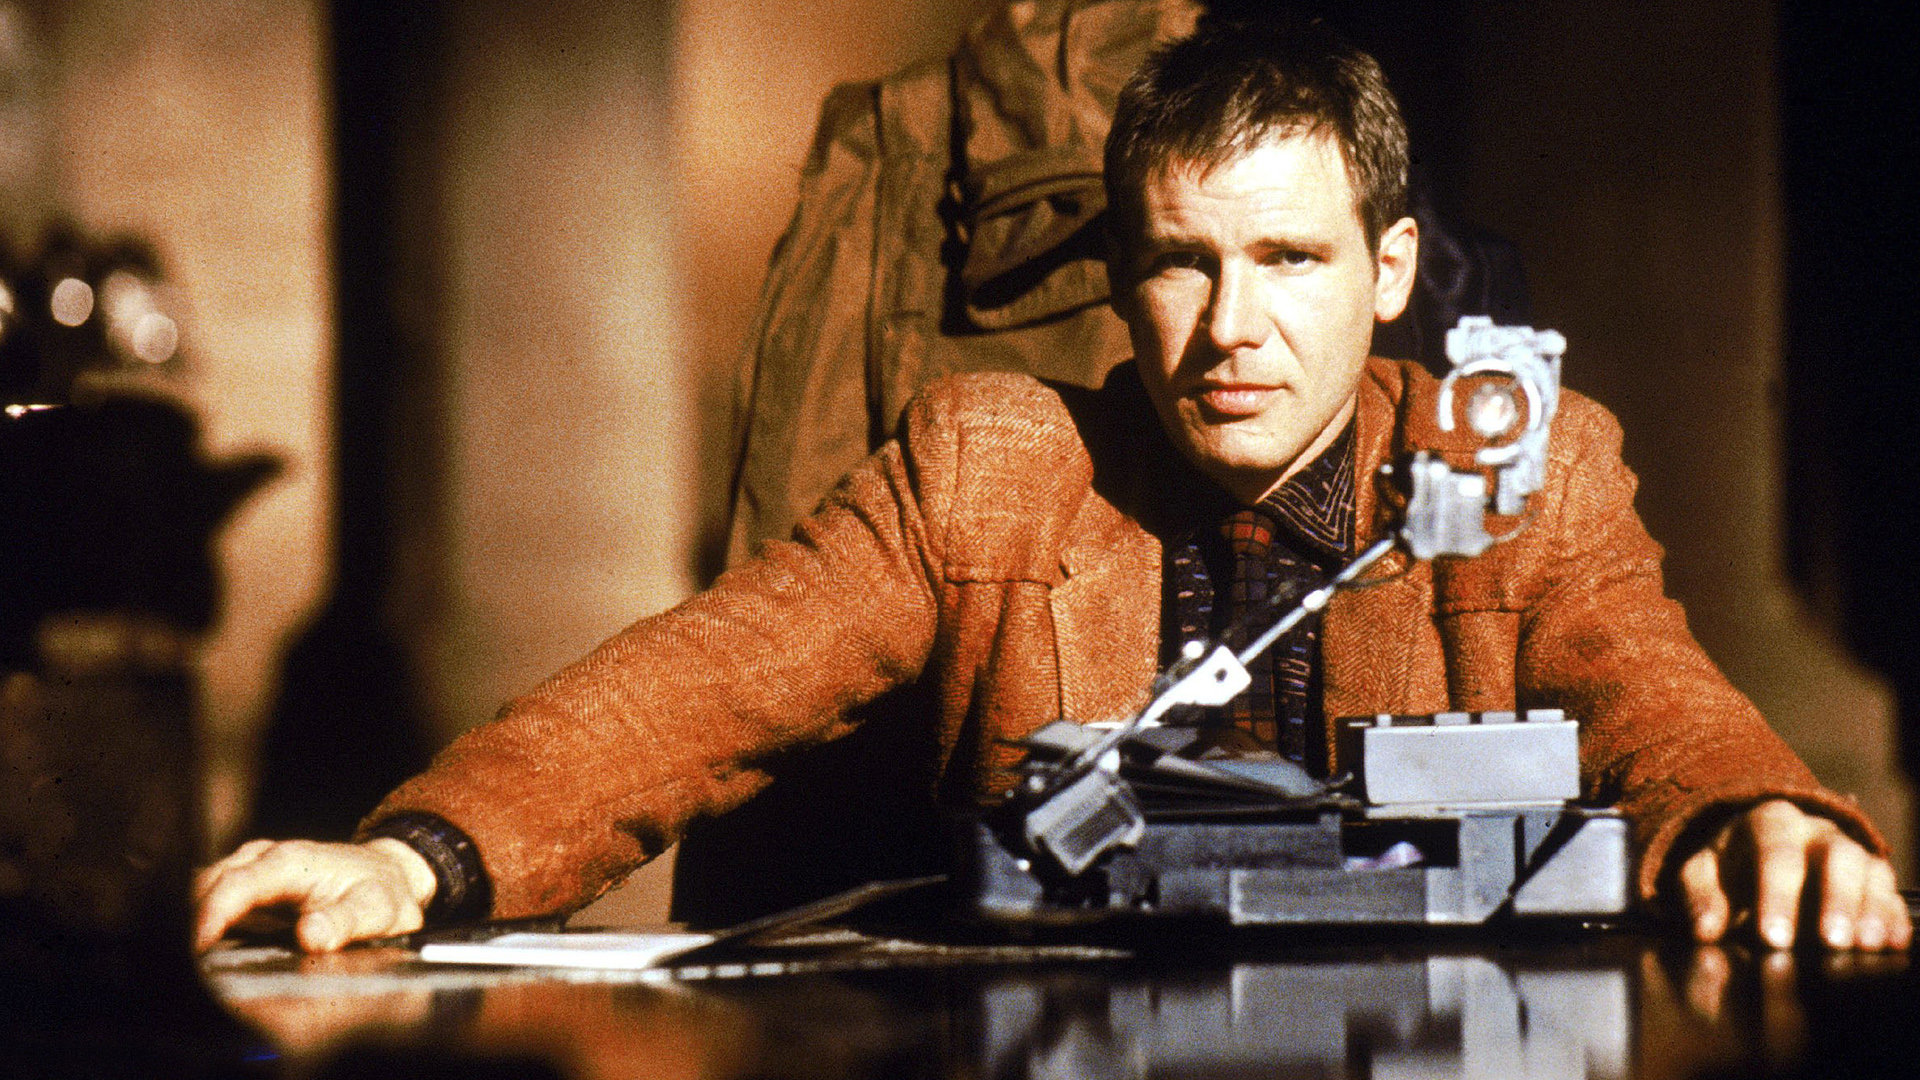 Harrison Ford sits in front of a machine as Rick Deckard in Blade Runner